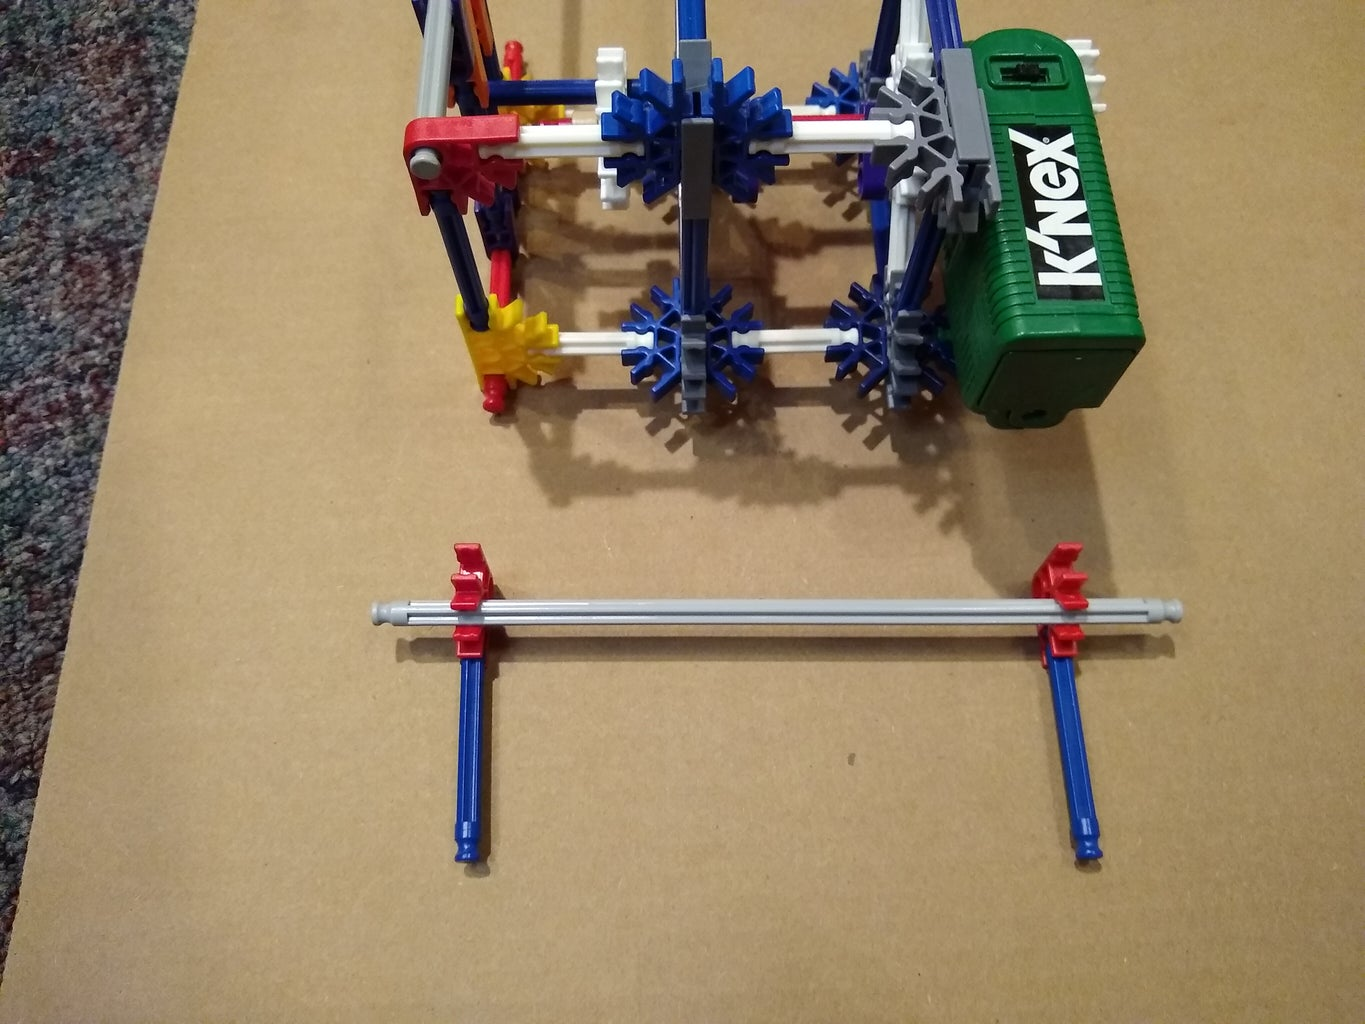 Add Support Feet to the End of the Motor/Yoke Assembly